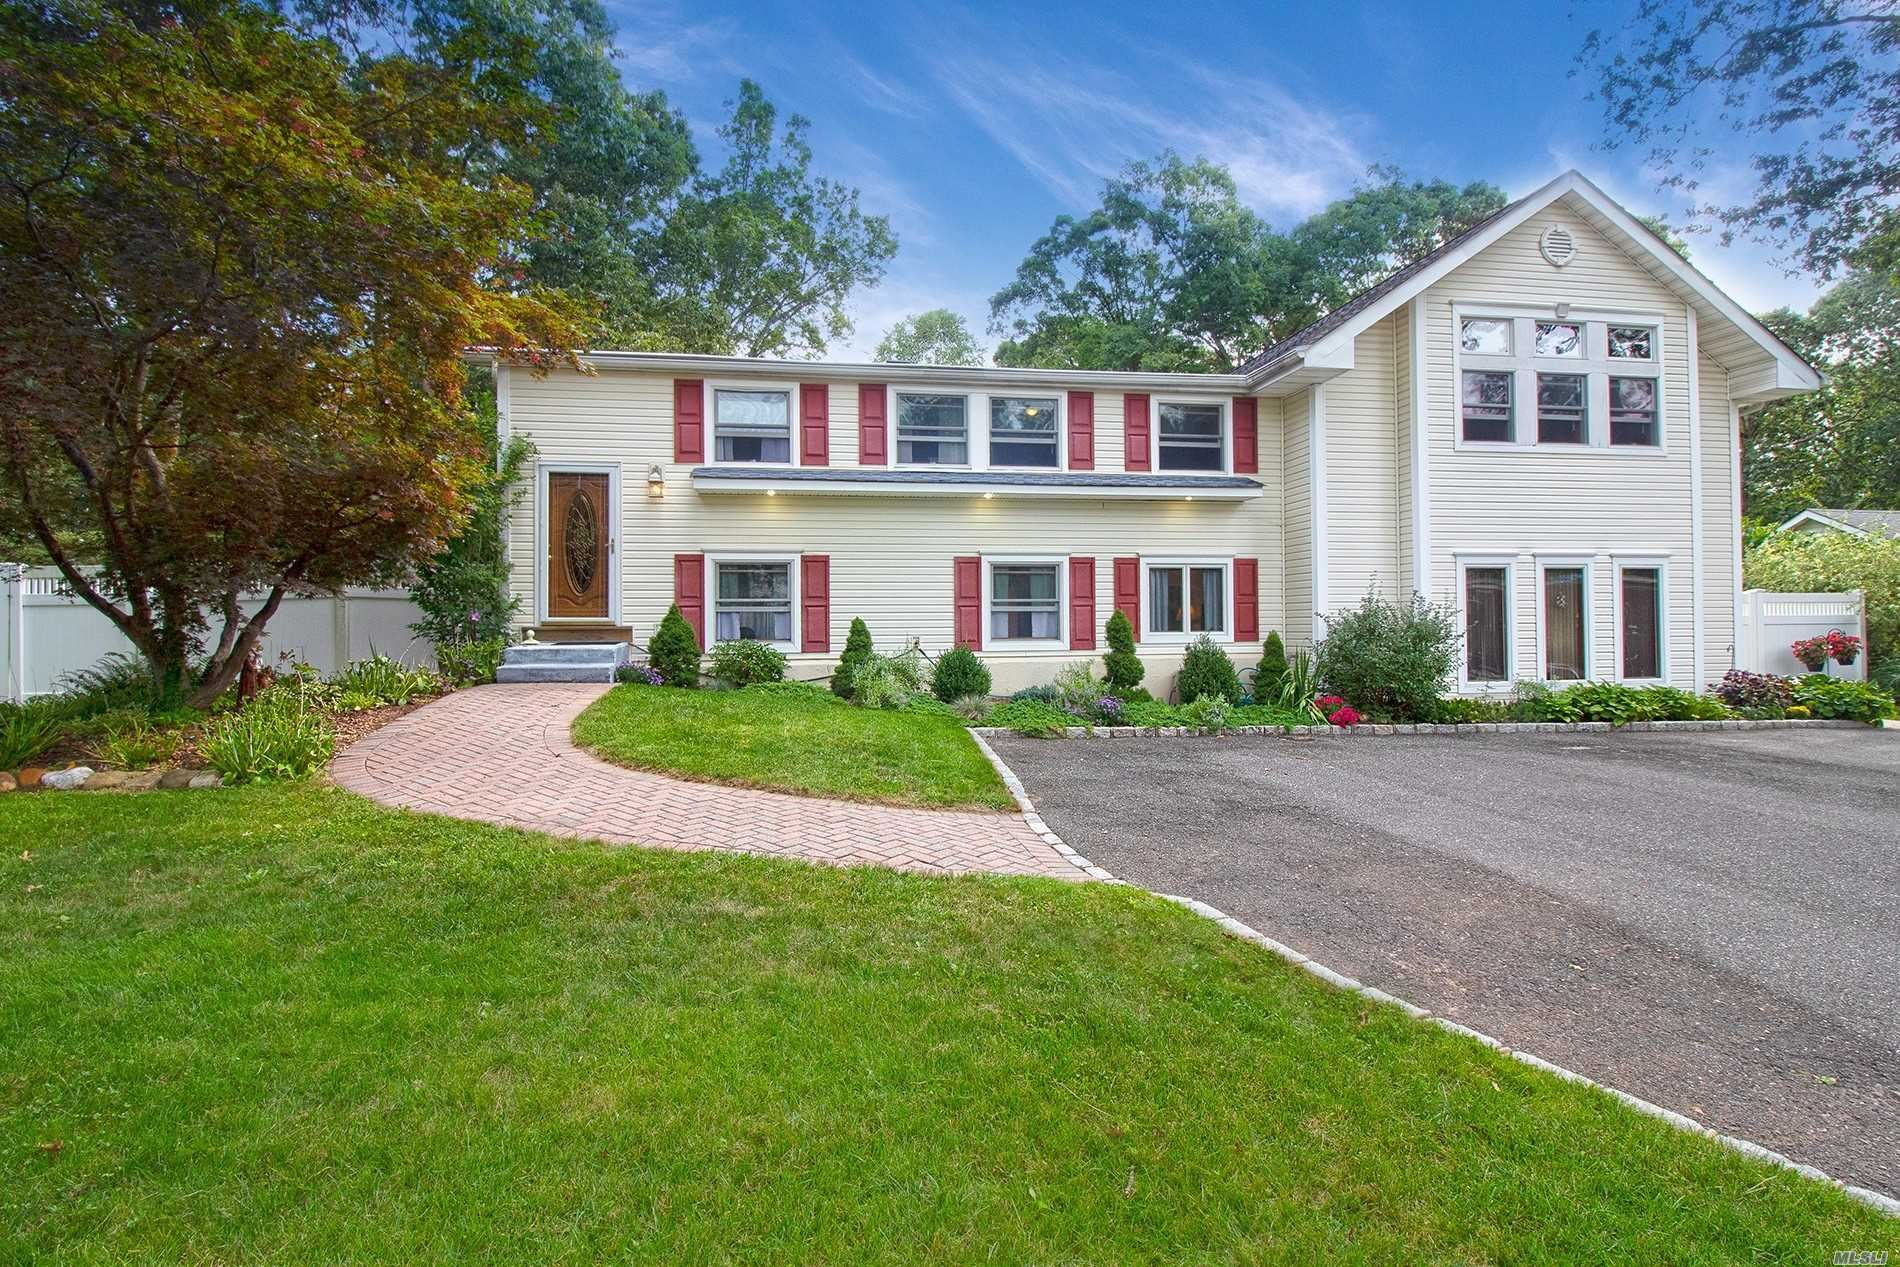 19 Beaver Lane, East Setauket, NY 11733 - MLS#: 3201440